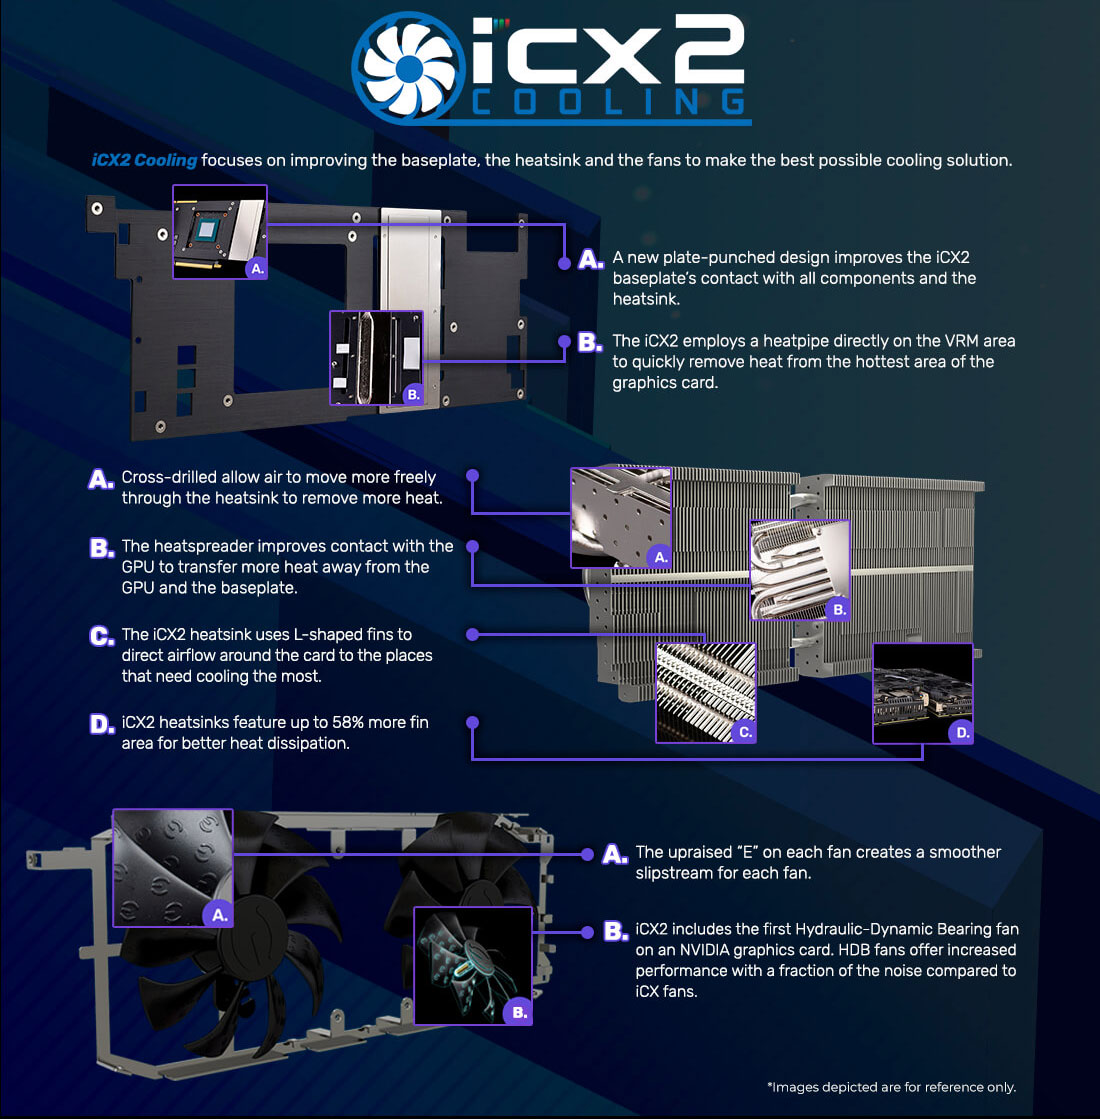 iCX2 Cooling Solution feature details